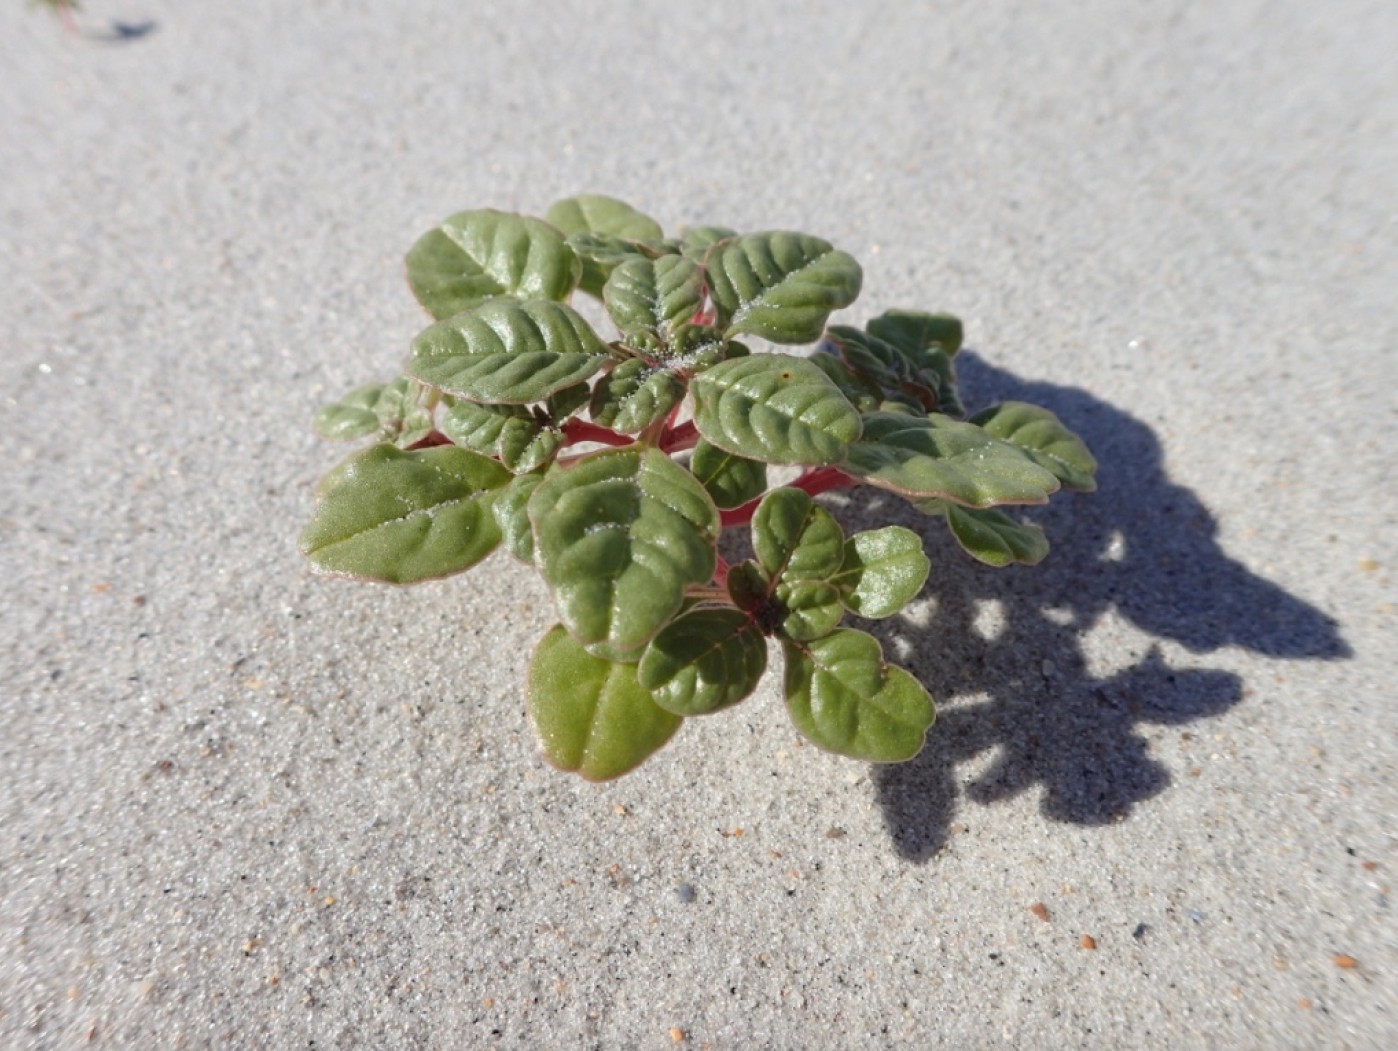 a green plant with broad leaves grows low in the land